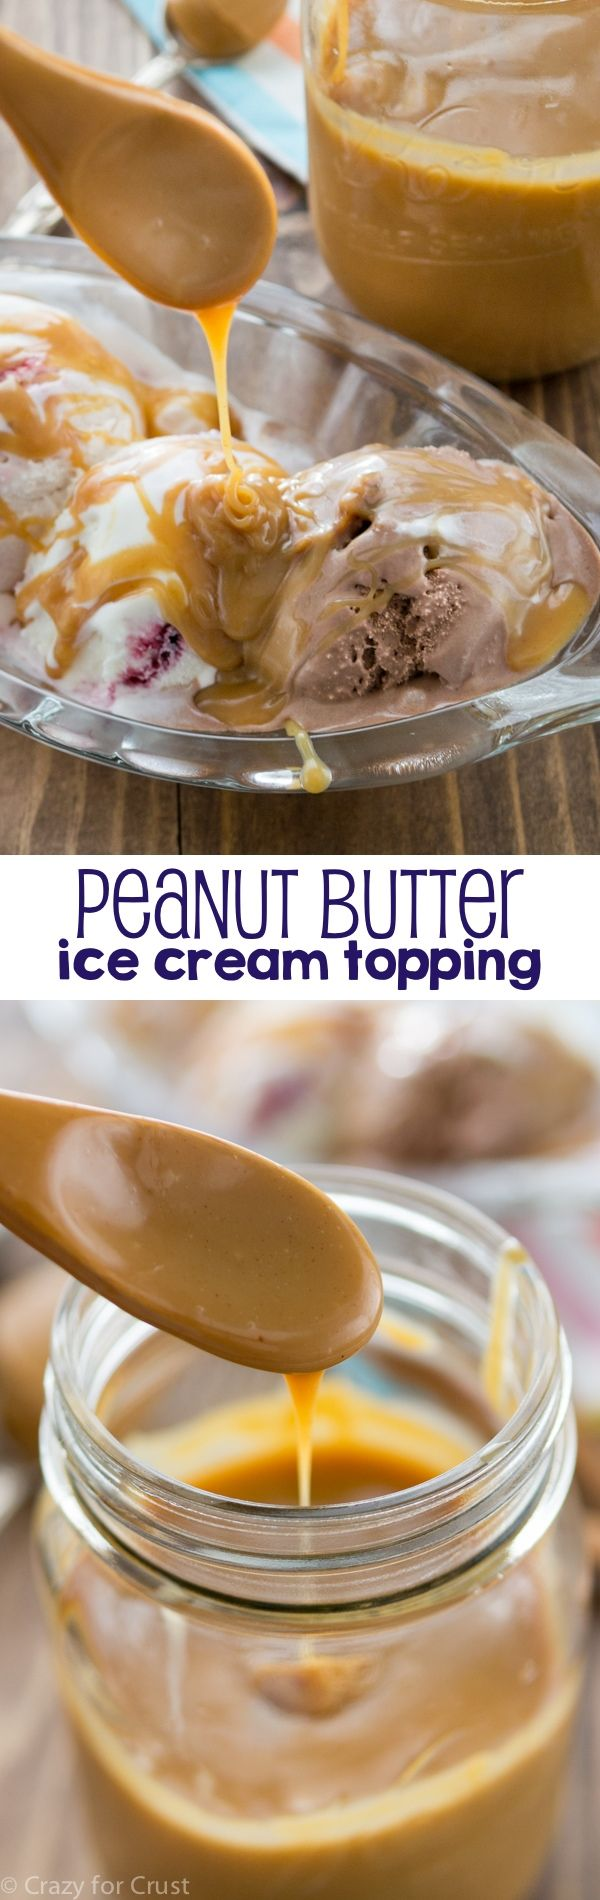 Peanut Butter Ice Cream Topping - an easy and fast way to make an ice cream sundae! This recipe is perfect for peanut butter lovers!